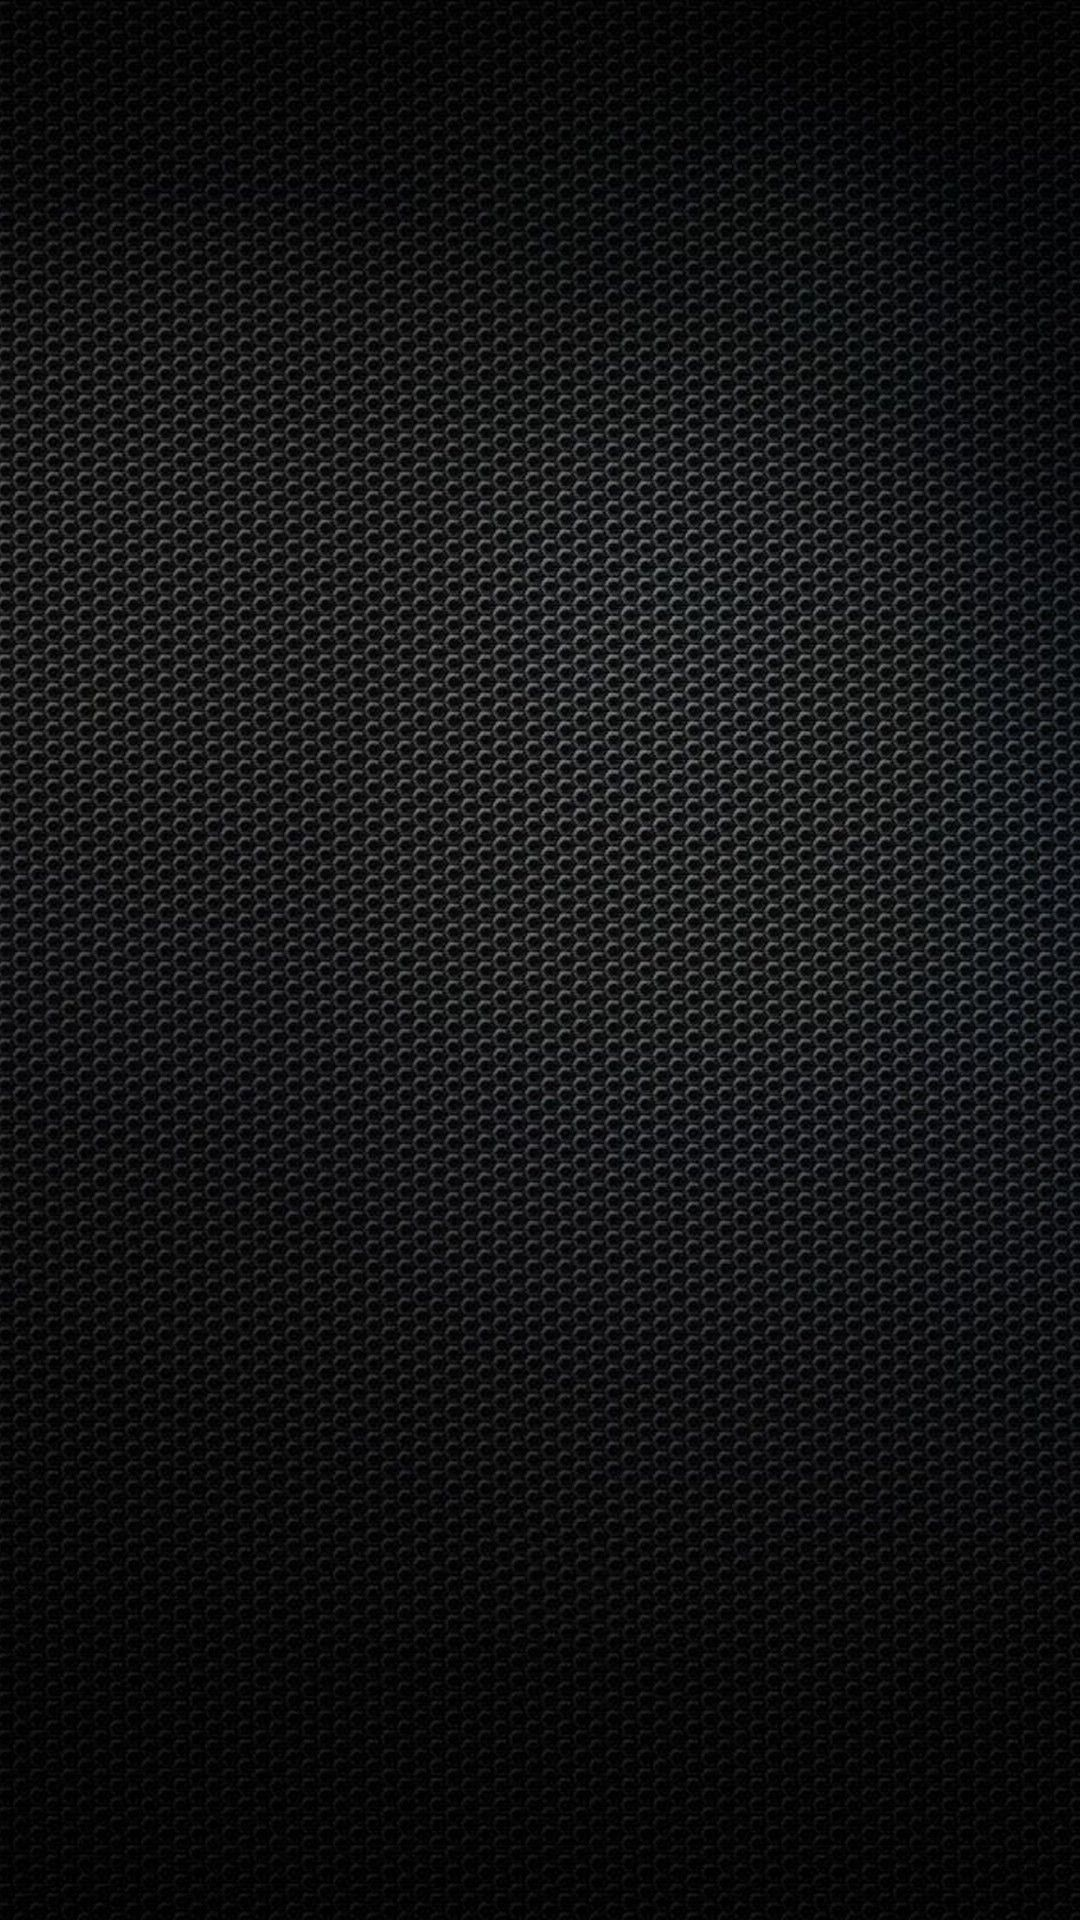 Black iphone 6s plus wallpaper